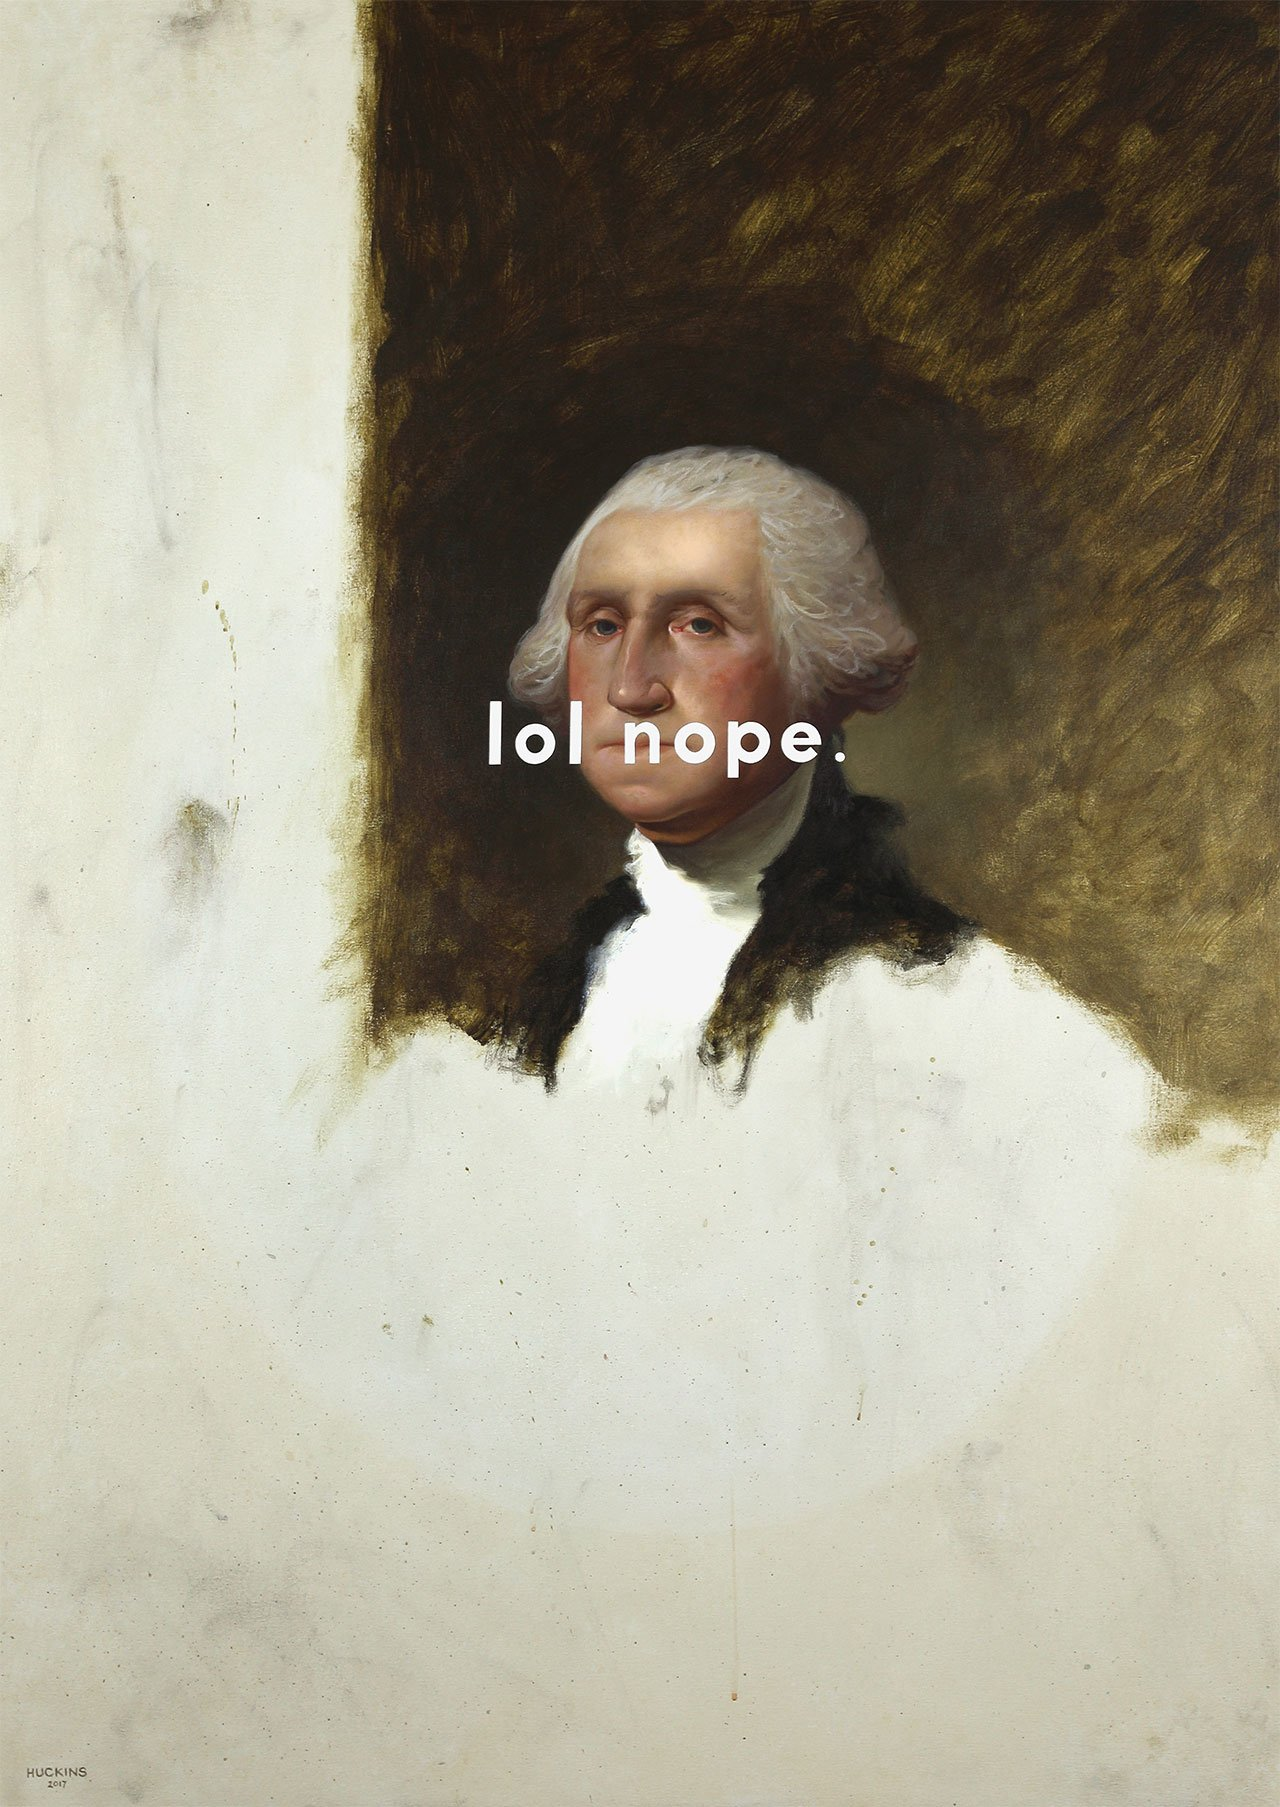 Shawn Huckins, George Washington (The Athenaeum Portrait): Laughing Out Loud Nope, 2017. Acrylic on canvas, 44 x 32 in (112 x 81 cm).